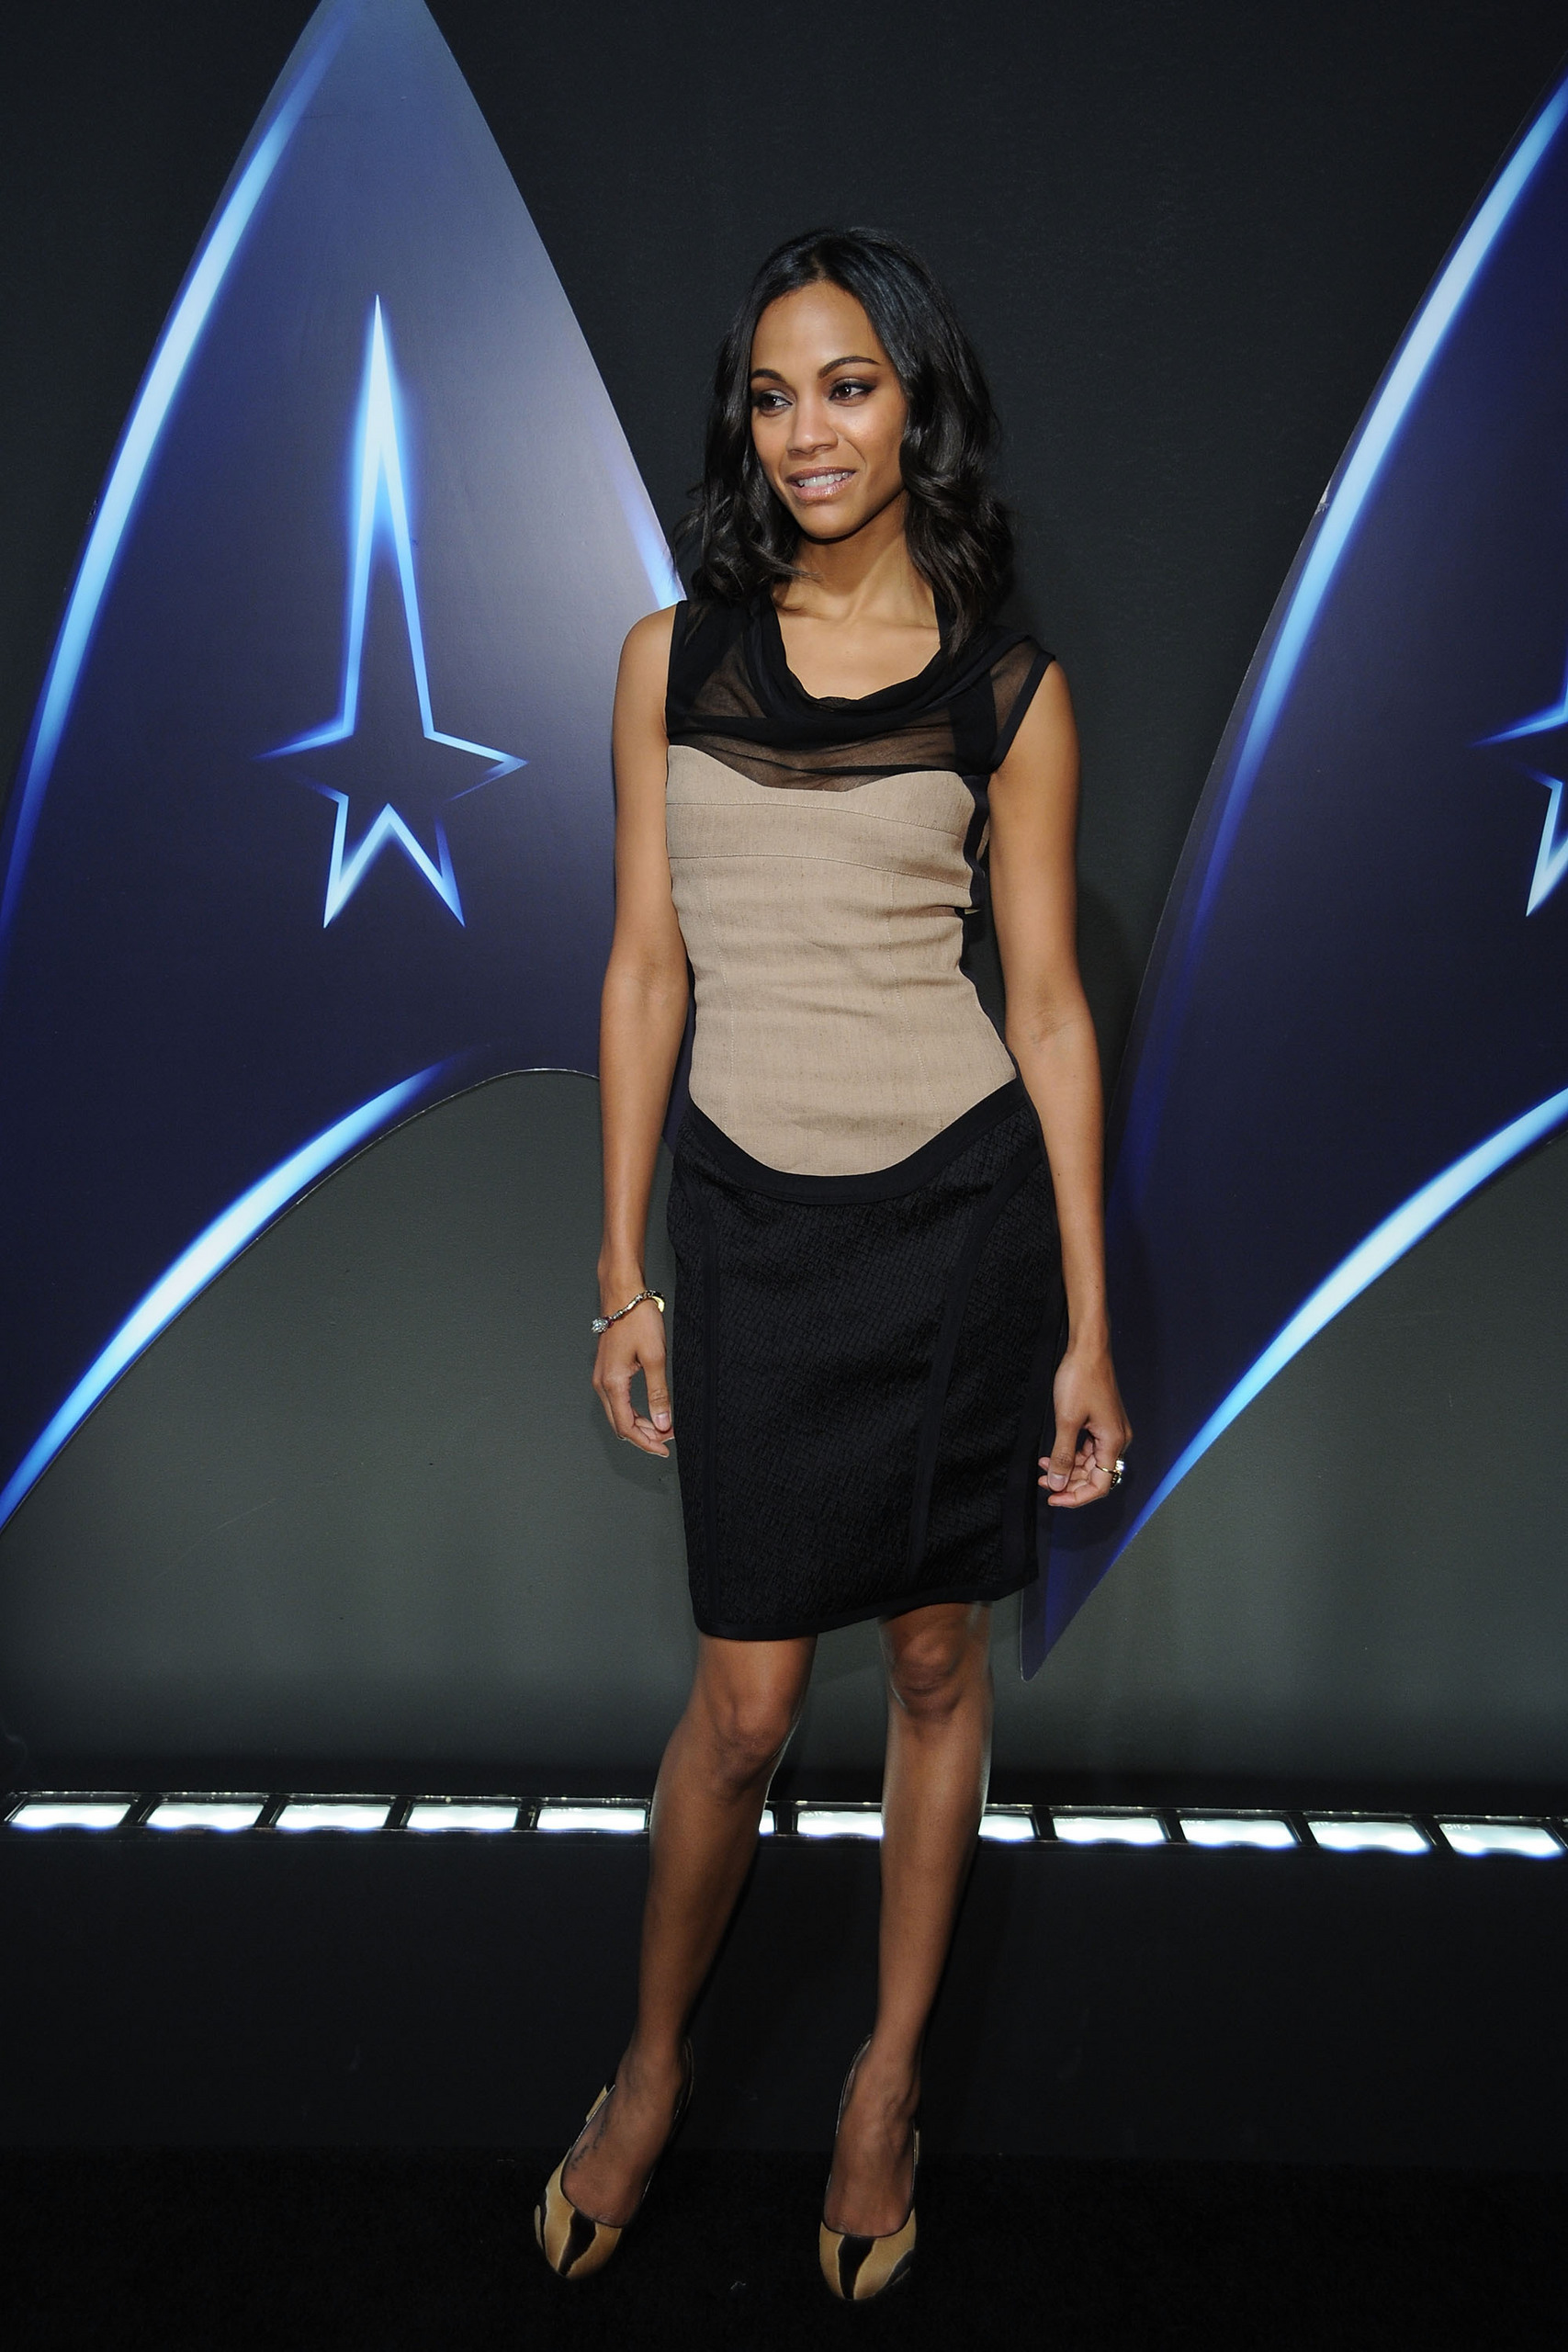 Zoe-Saldana-Star-Trek-DVD-Release-Party-HQ-zoe-saldana-9261003-1707    Zoe Saldana Star Trek